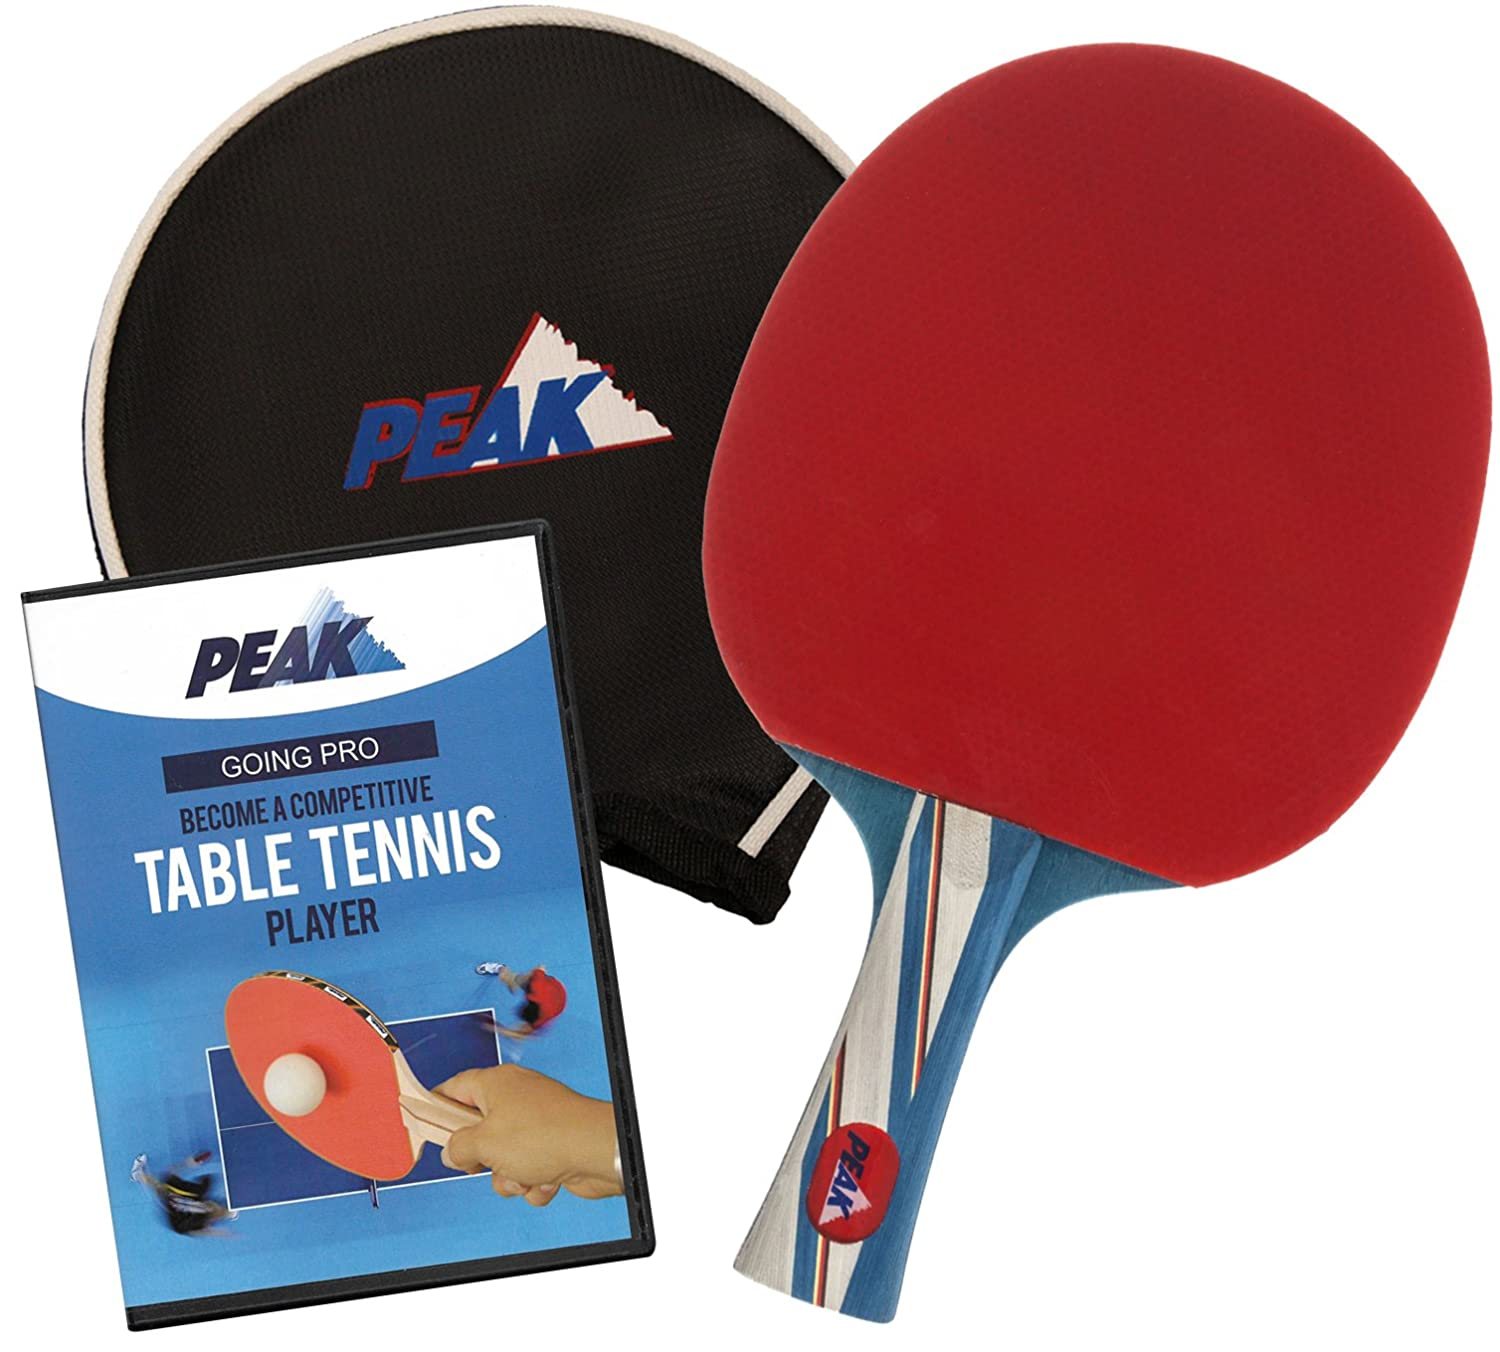 Peak Table Tennis Racket with Padded Storage Case and Going Pro Instructional DVD - Ping Pong Paddle B017YBRQWC